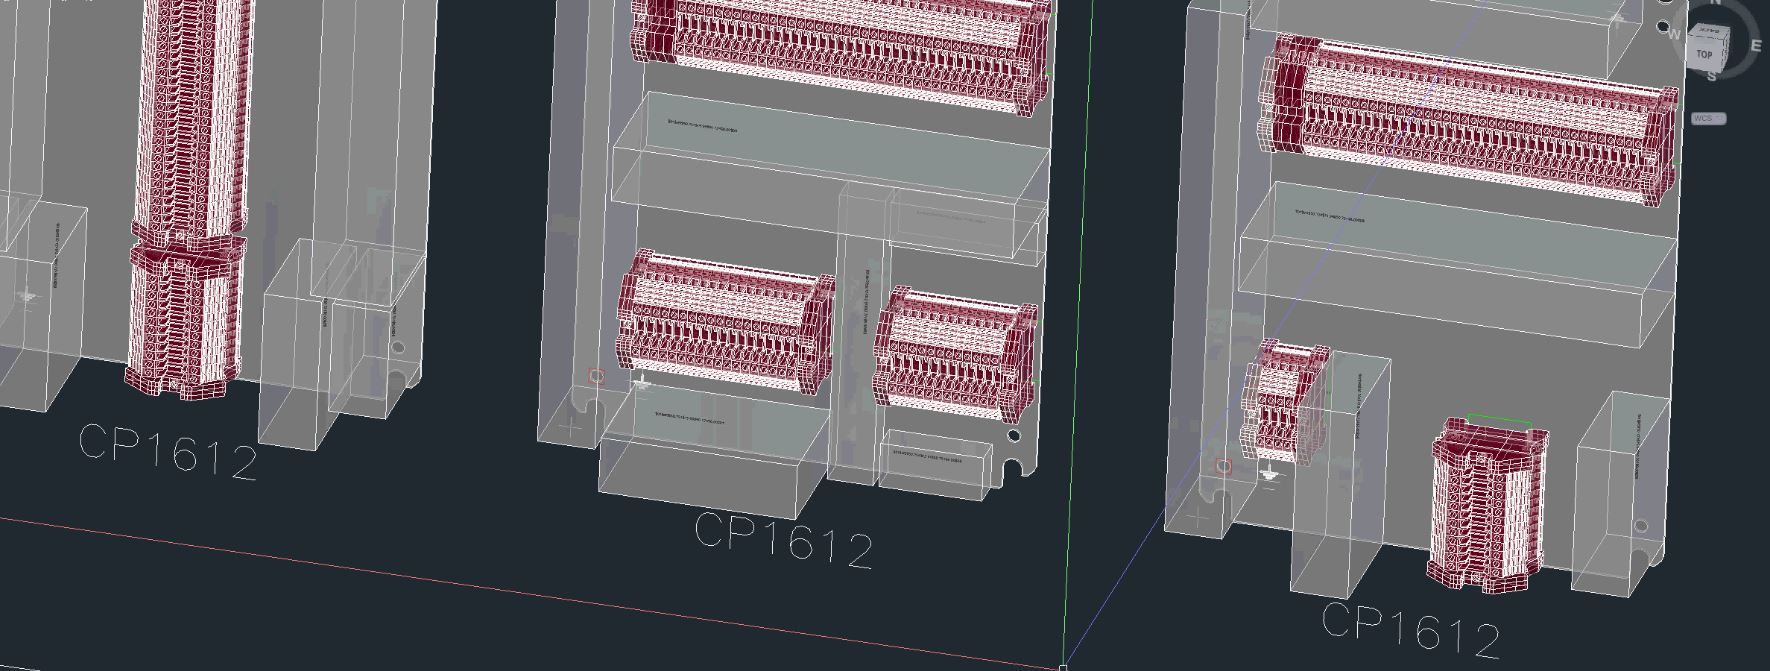 Introducing Process Solutions' New 3D Panel Layout Program